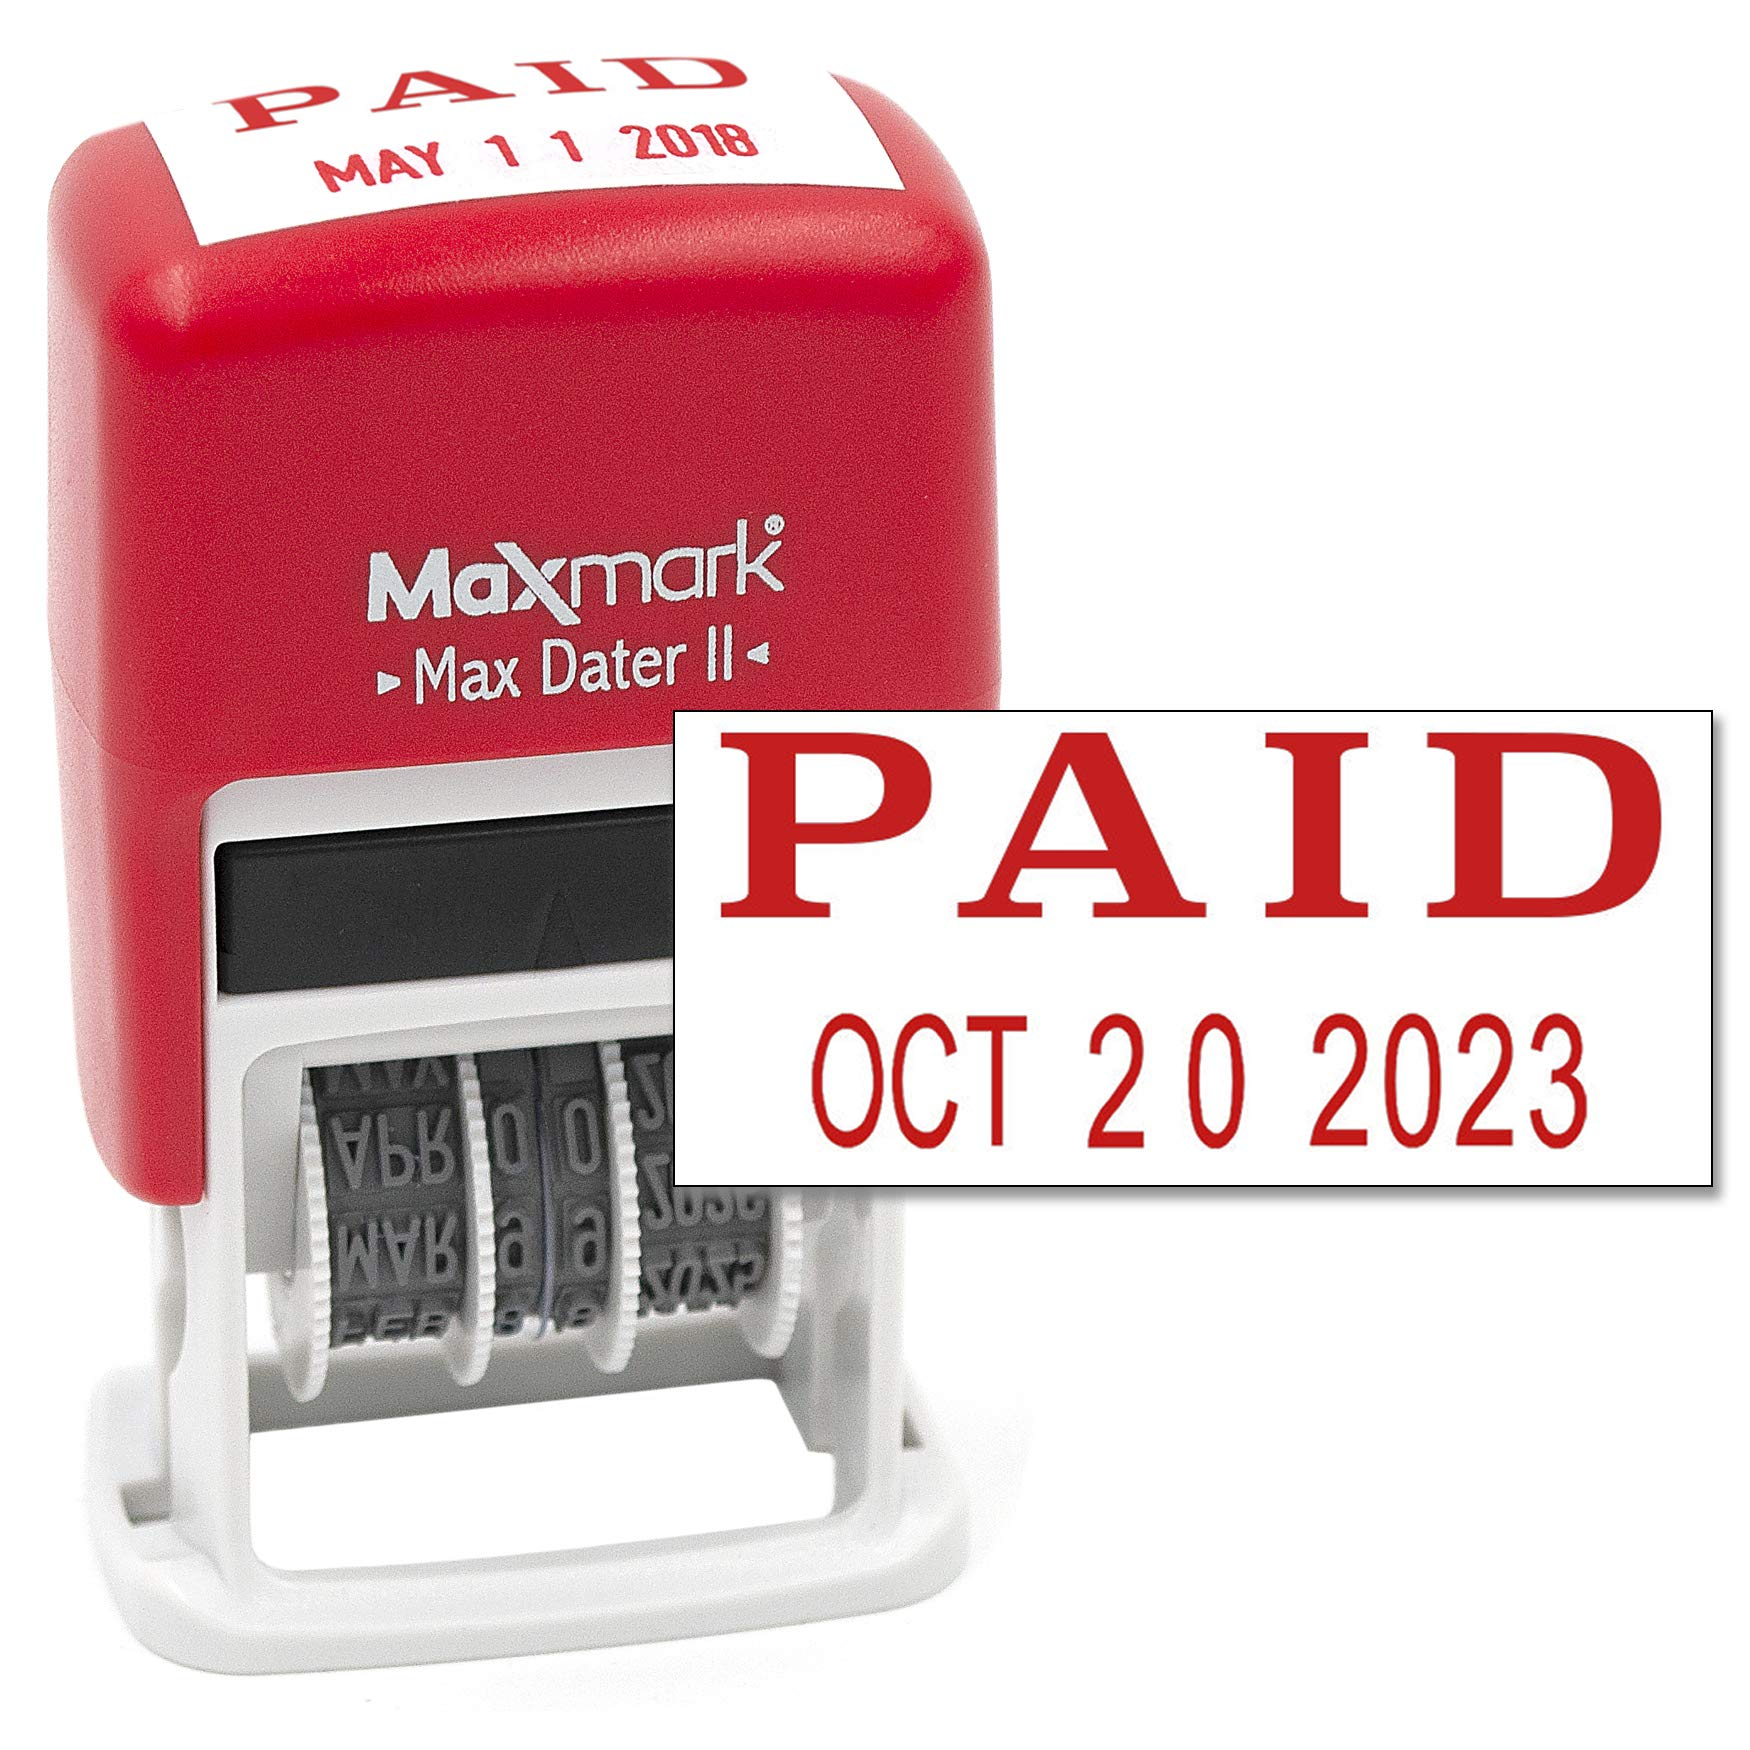 MaxMark Self-Inking Rubber Date Office Stamp with Paid Phrase & Date - RED Ink (Max Dater II), 12-Year Band by MaxMark